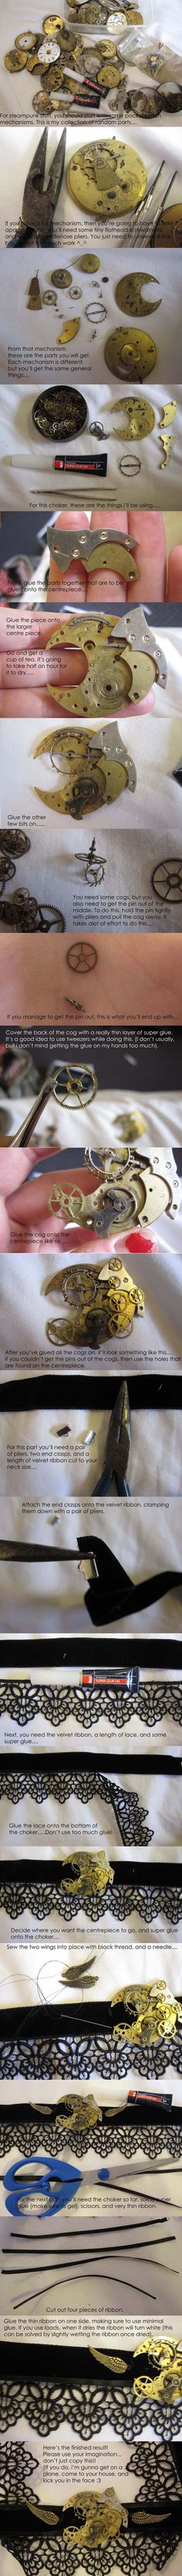 steampunk necklace DIY ... http://gothic-enchantress.deviantart.com/art/Steampunk-jewellery-tutorial-142394709